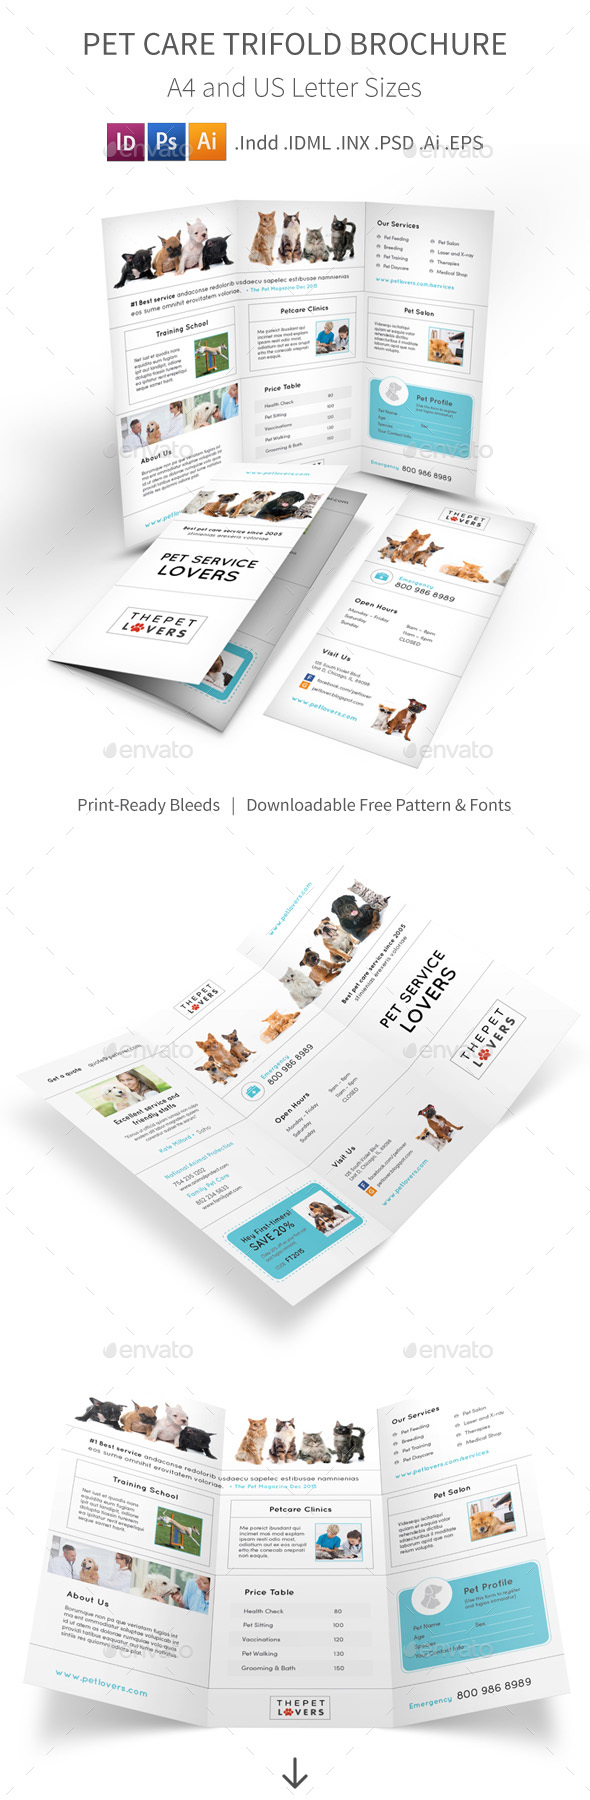 Pet Care Trifold Brochure 4 - Informational Brochures